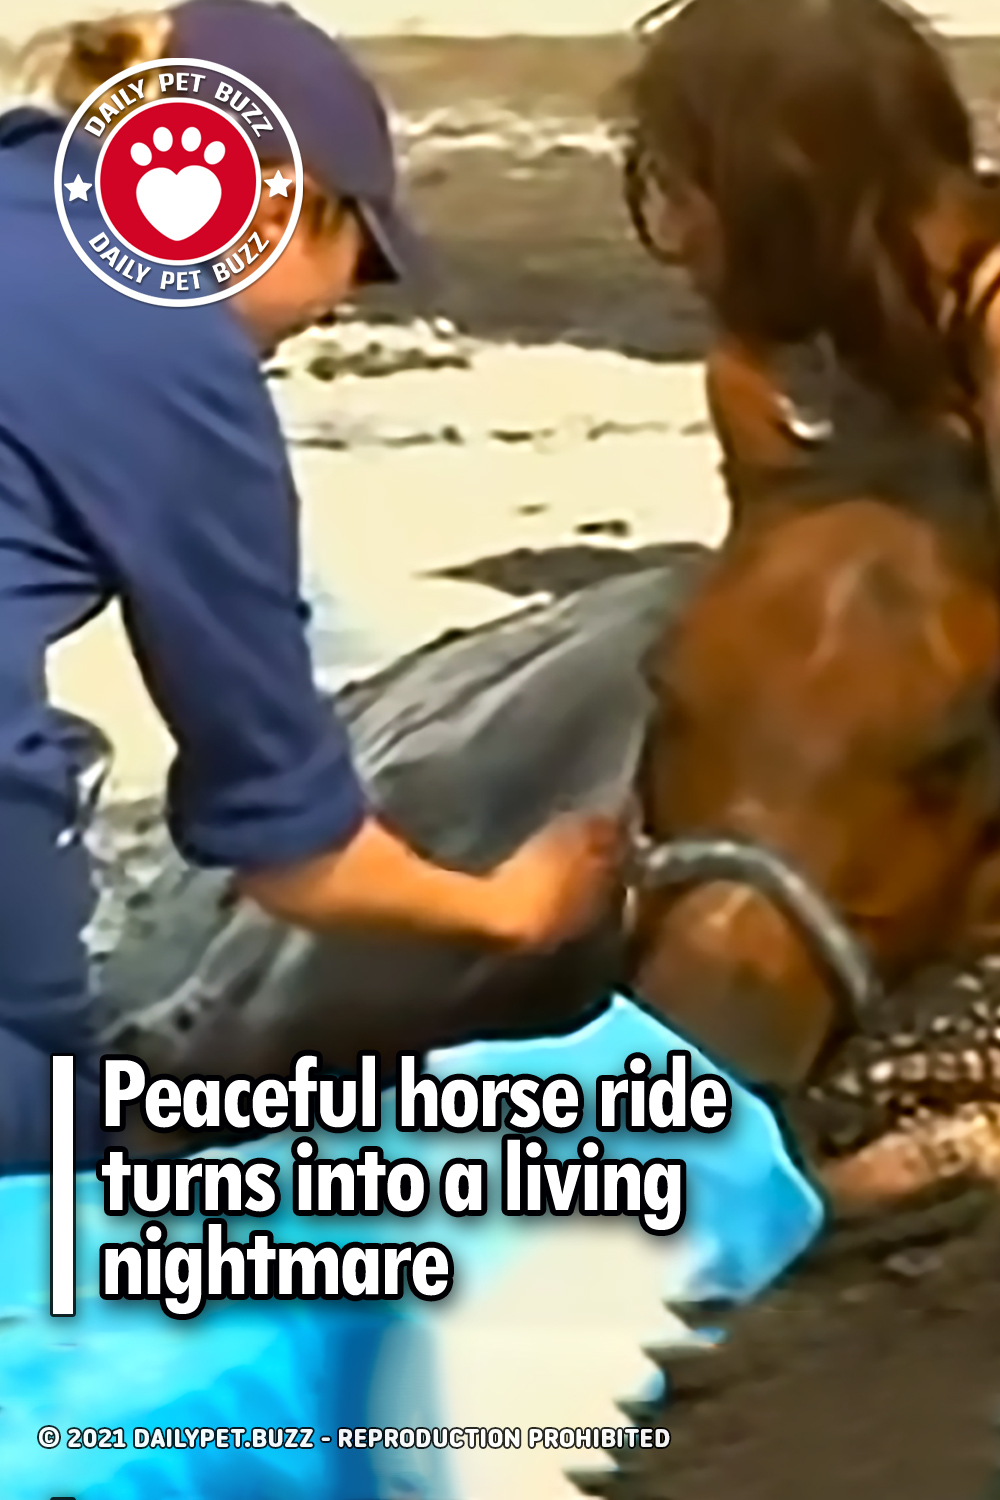 Peaceful horse ride turns into a living nightmare